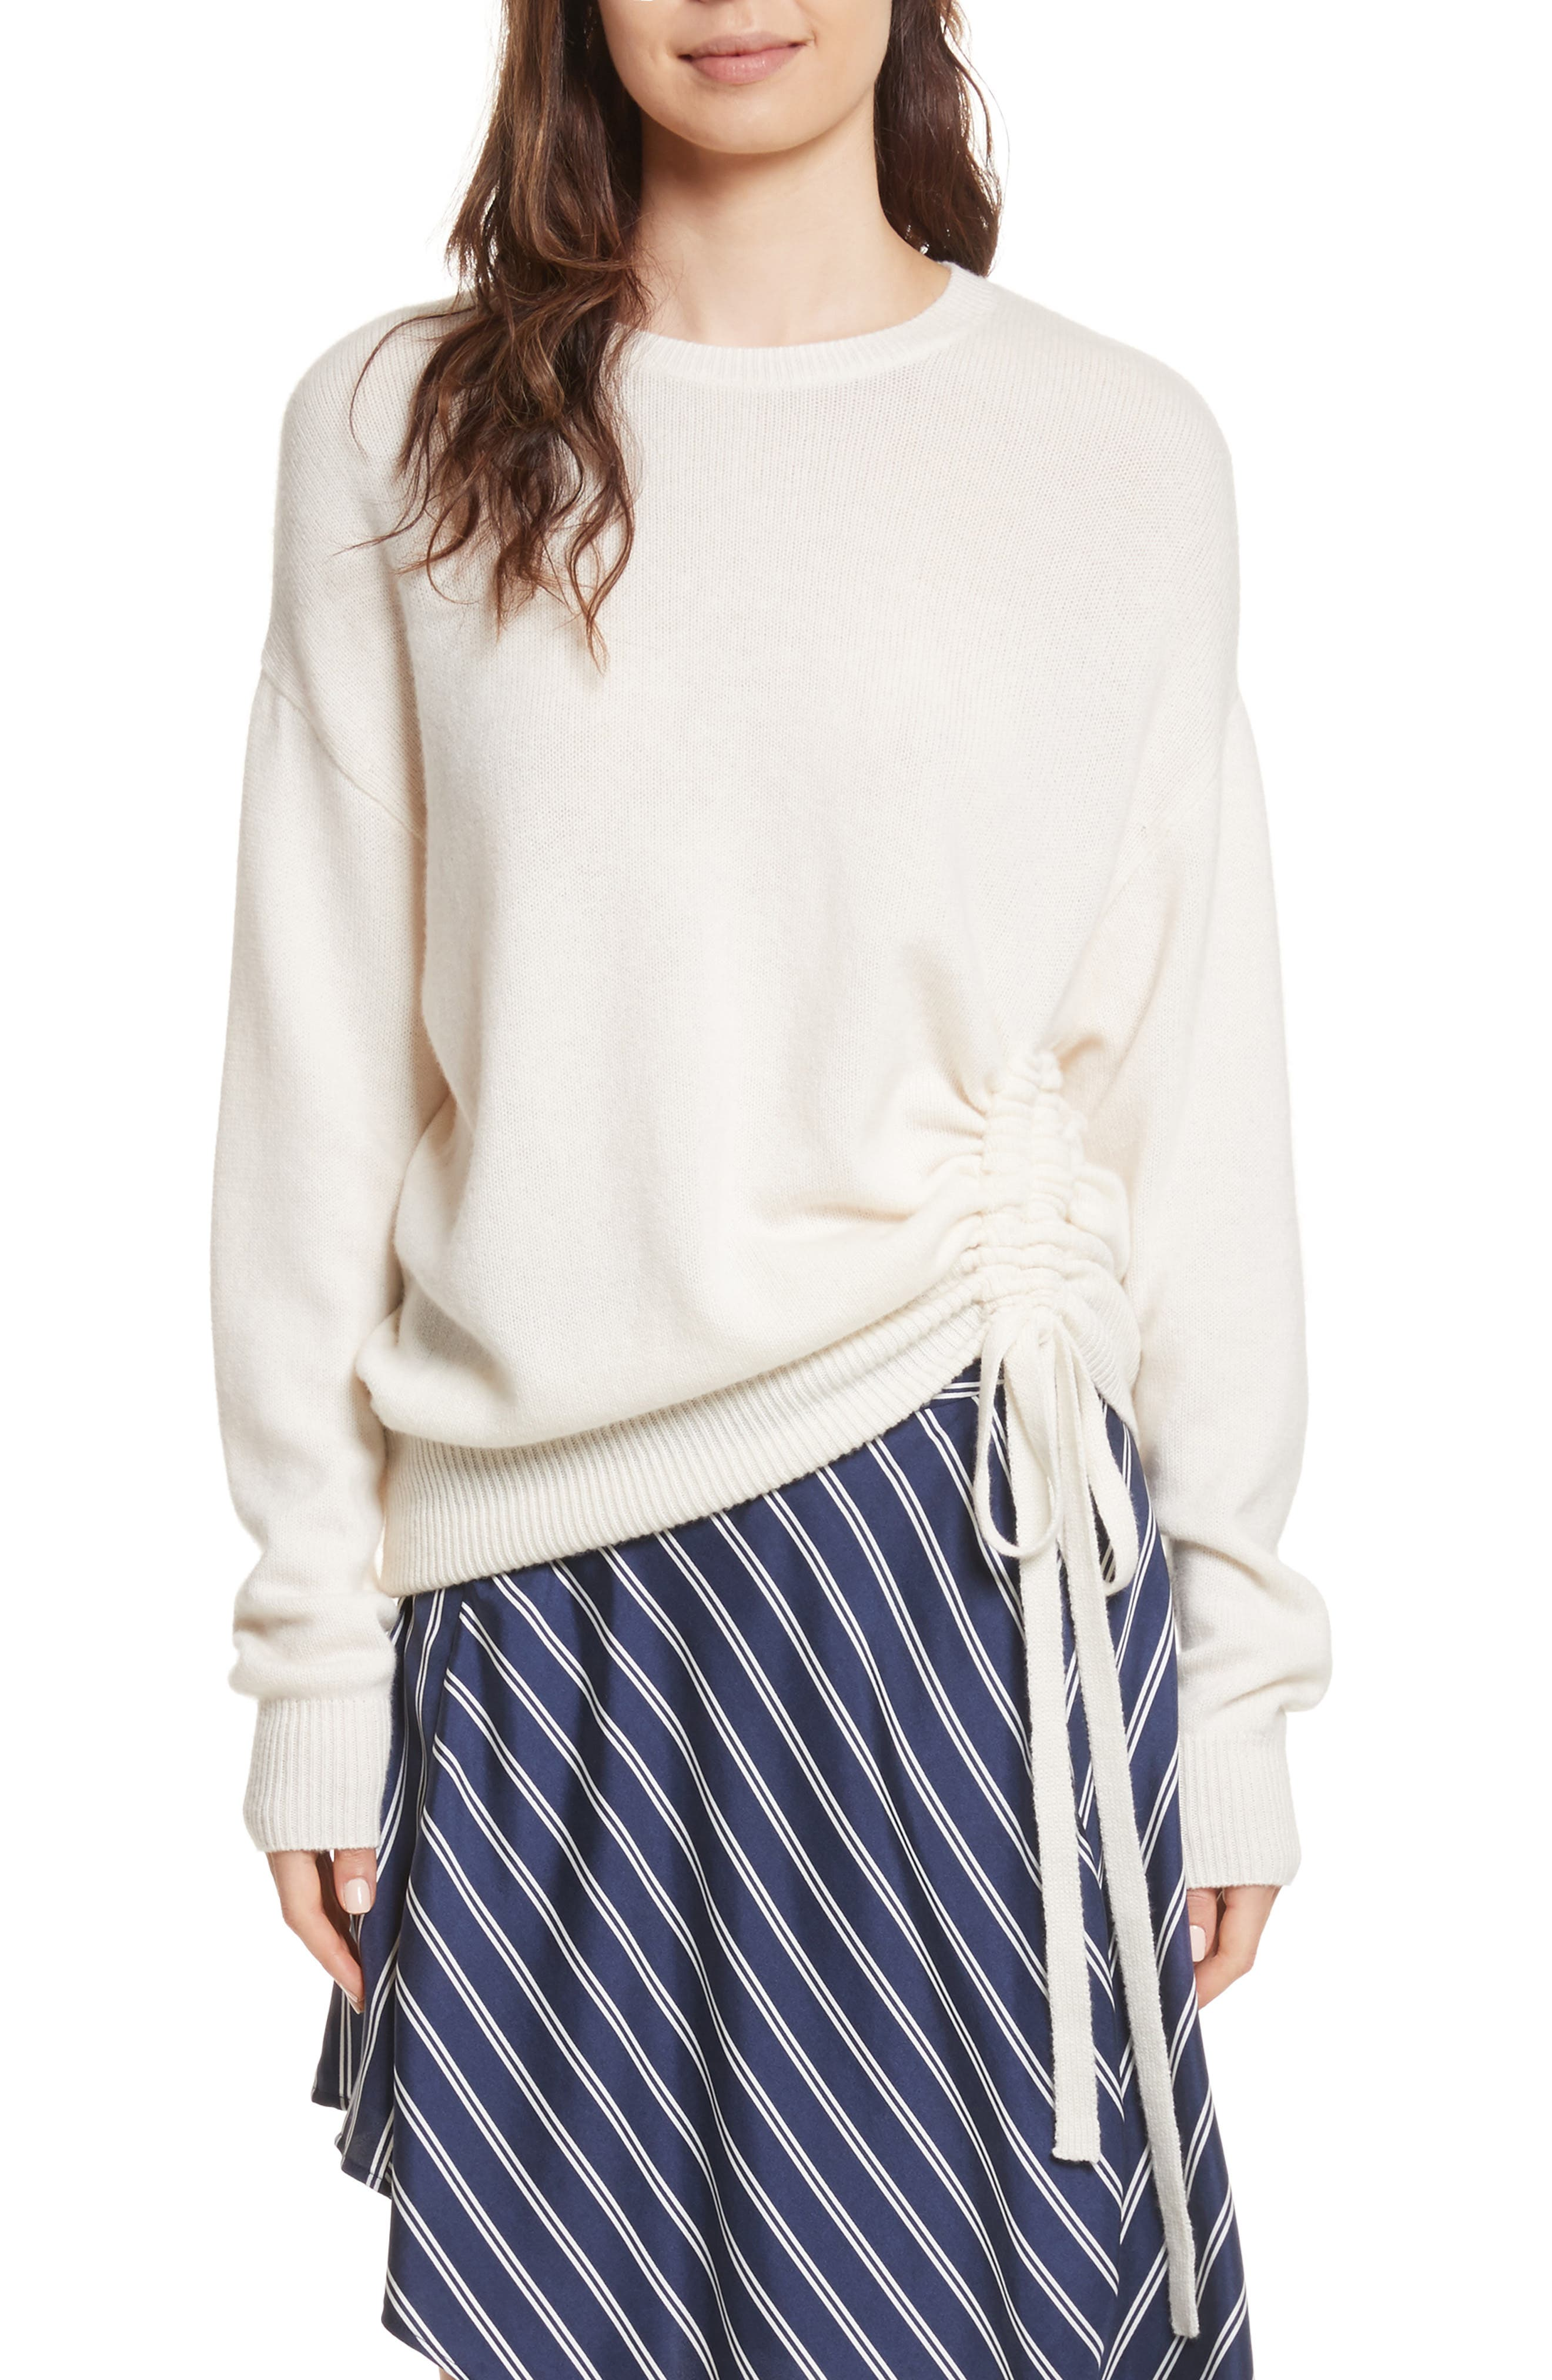 JOIE Iphis Wool & Cashmere Sweater, Main, color, 114